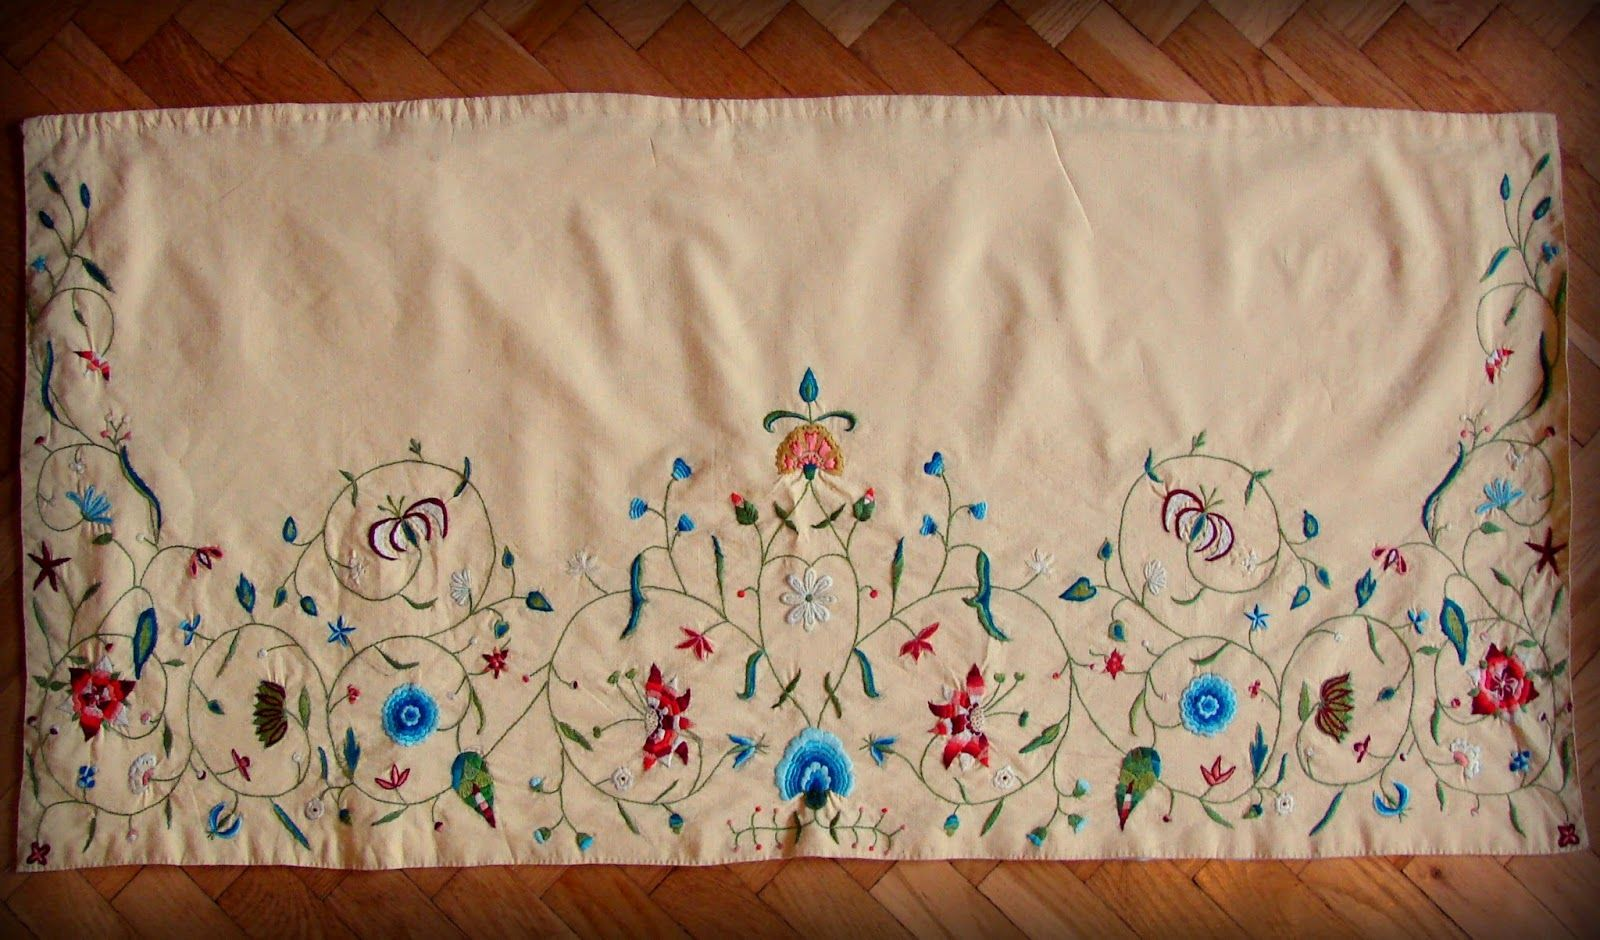 18th century apron based on http://collections.lacma.org/node/242445